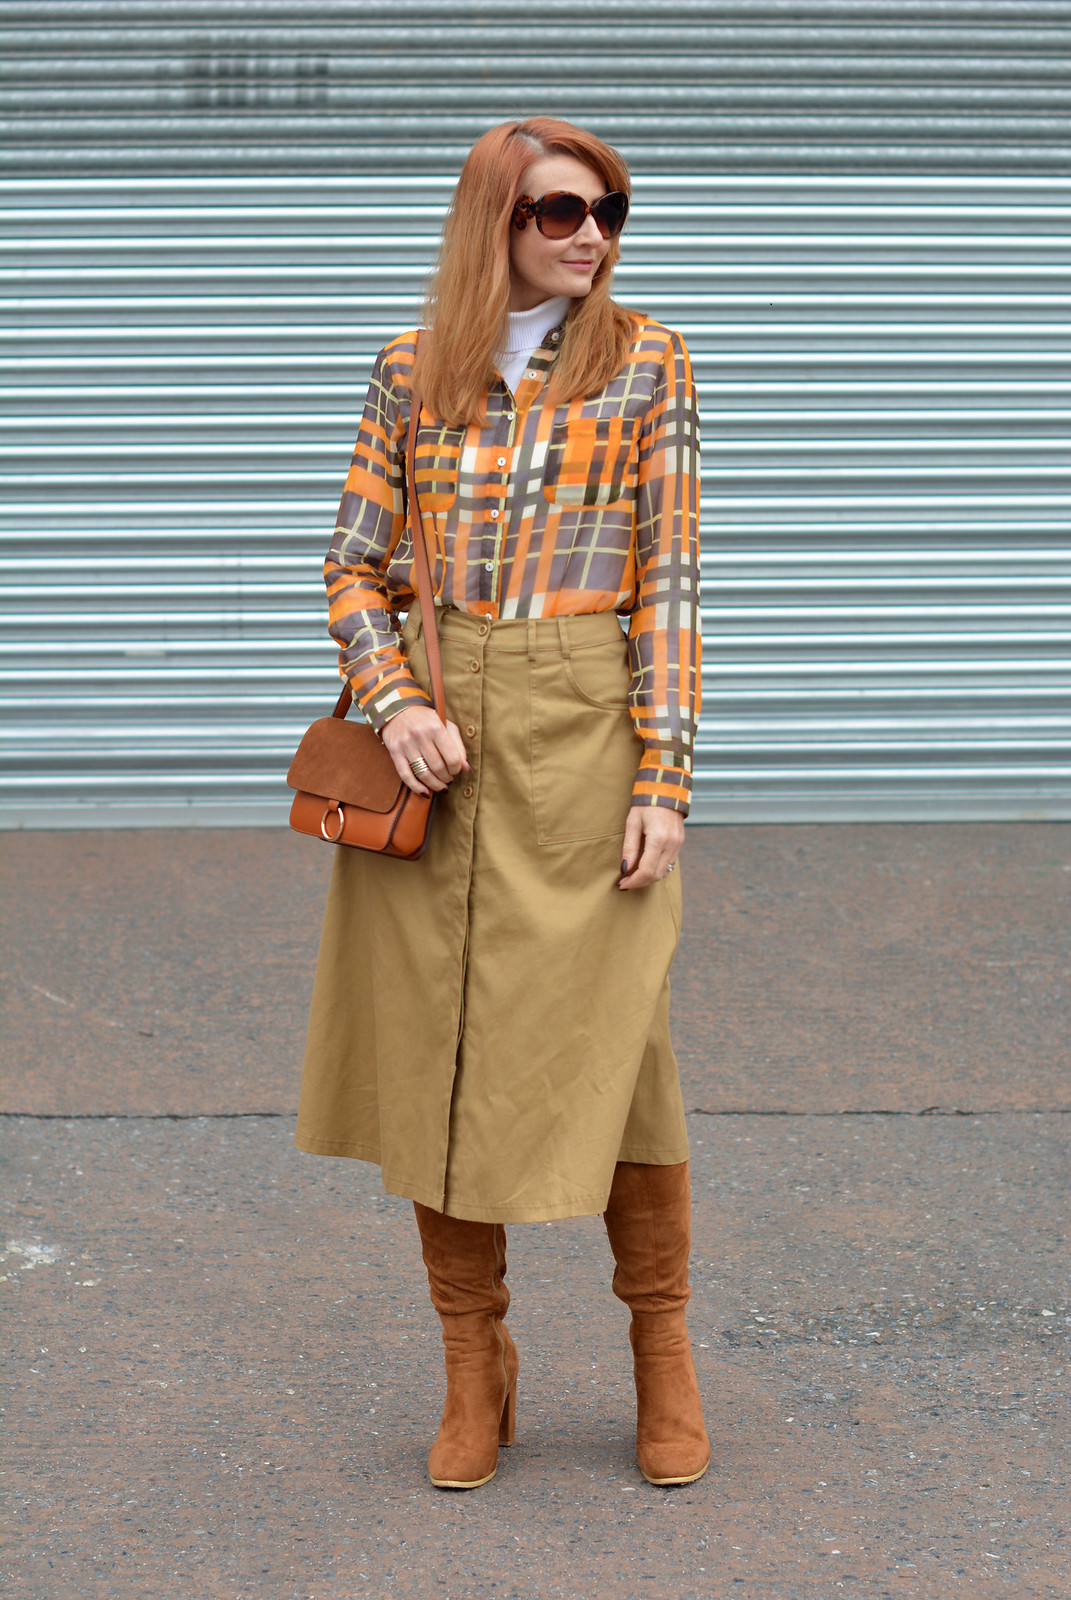 70s style without wearing flared jeans   Midi skirt, boots and roll neck